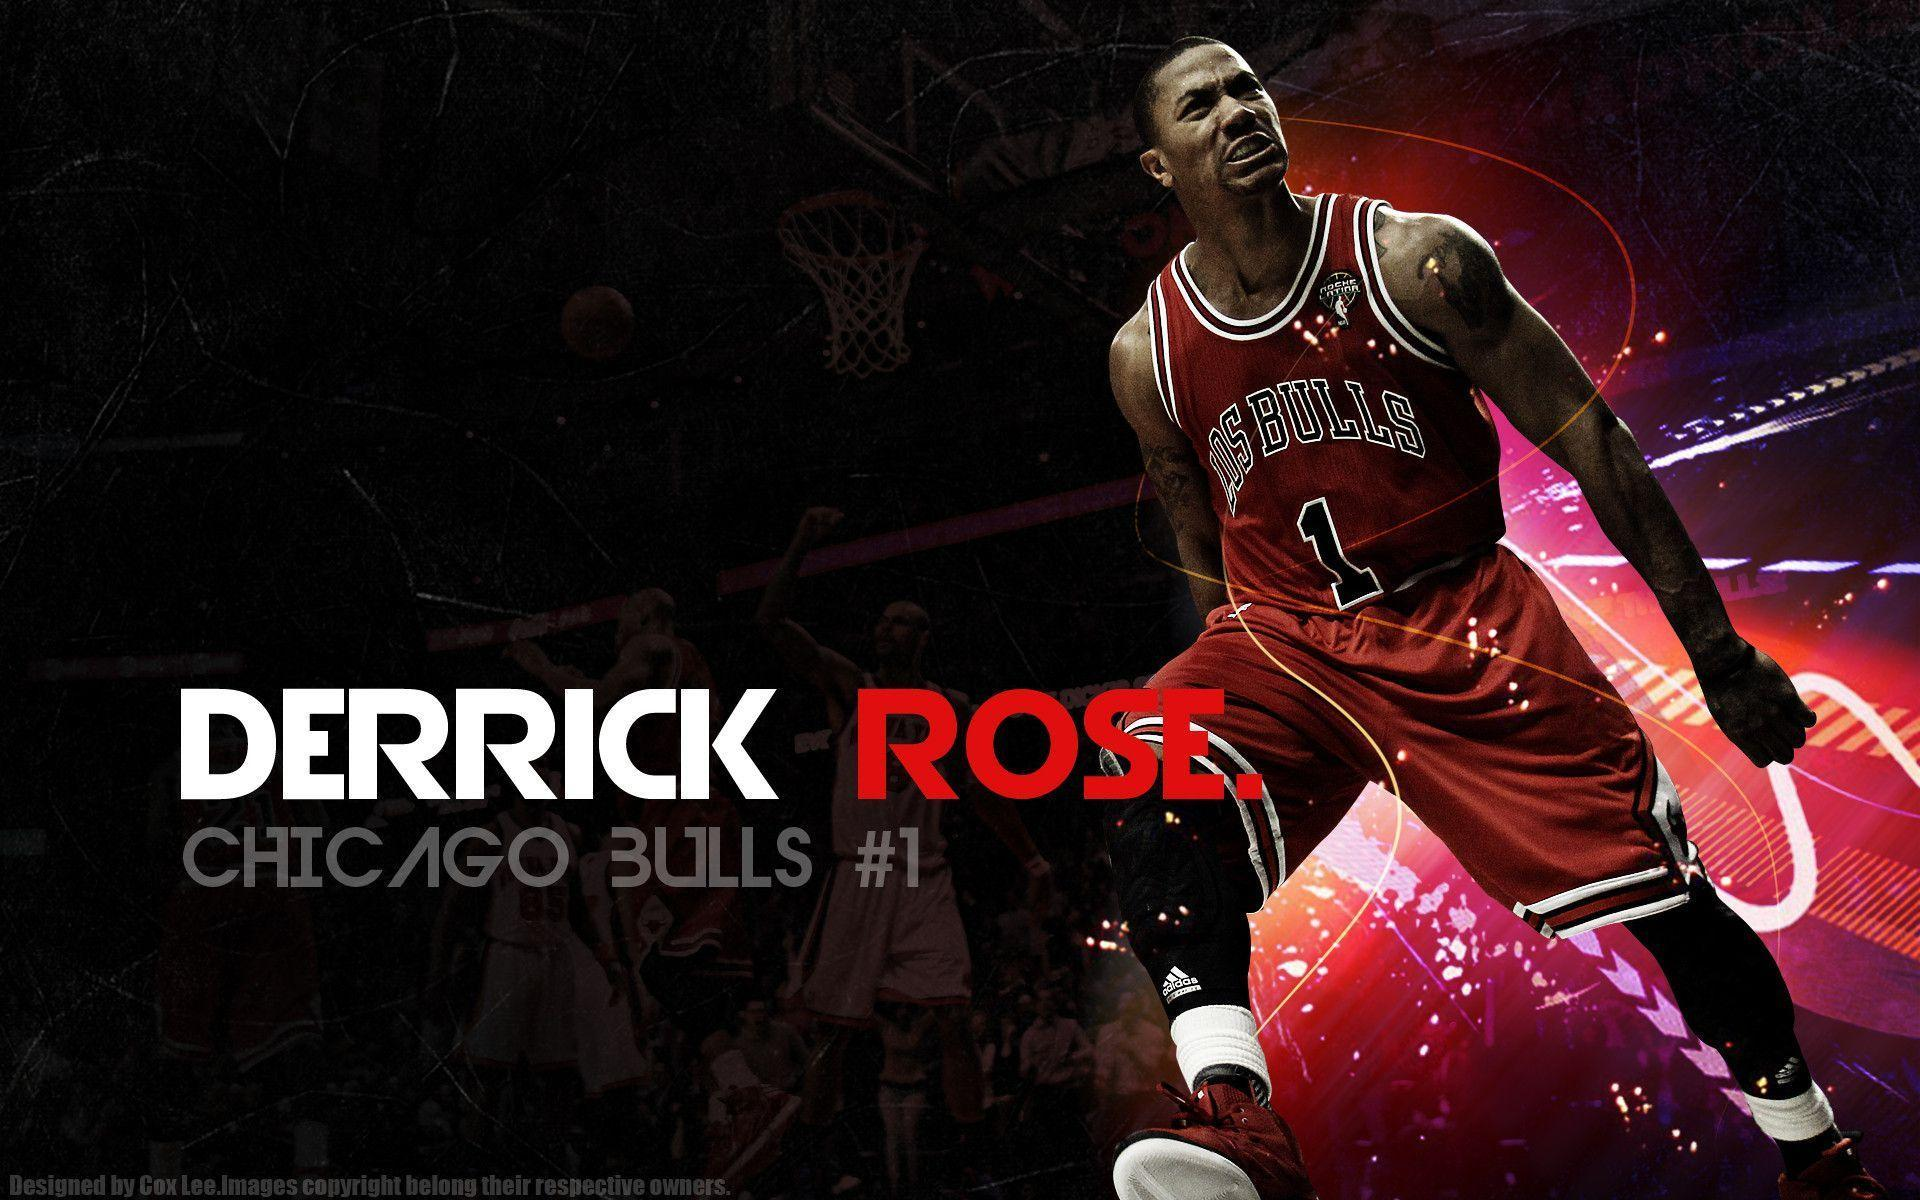 Derrick rose hd wallpapers wallpaper cave derrick rose wallpaper 22 119917 images hd wallpapers wallfoy voltagebd Image collections